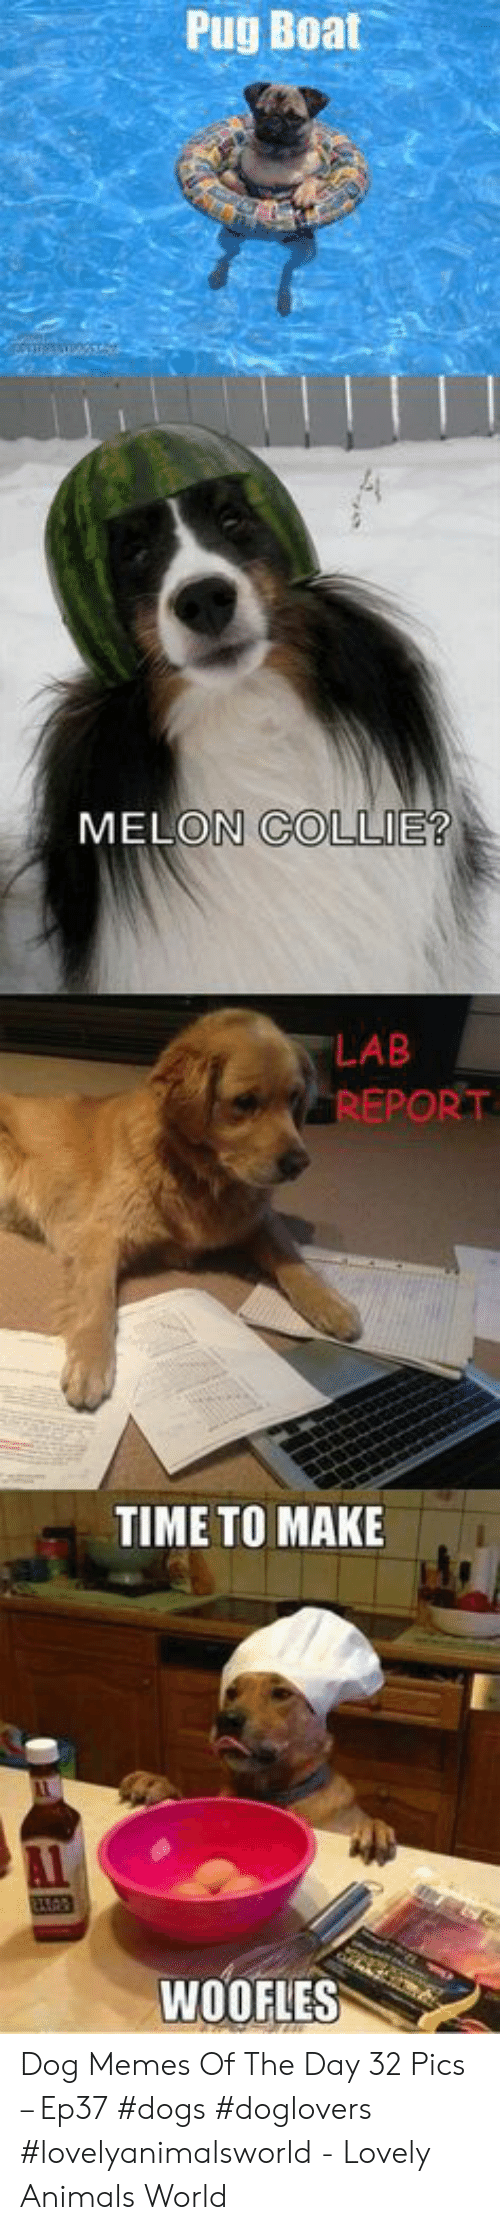 Animals, Dogs, and Memes: Pug Boat  MELON COLLIE?  LAB  REPORT  TIME TO MAKE  WOOFLES Dog Memes Of The Day 32 Pics – Ep37 #dogs #doglovers #lovelyanimalsworld - Lovely Animals World